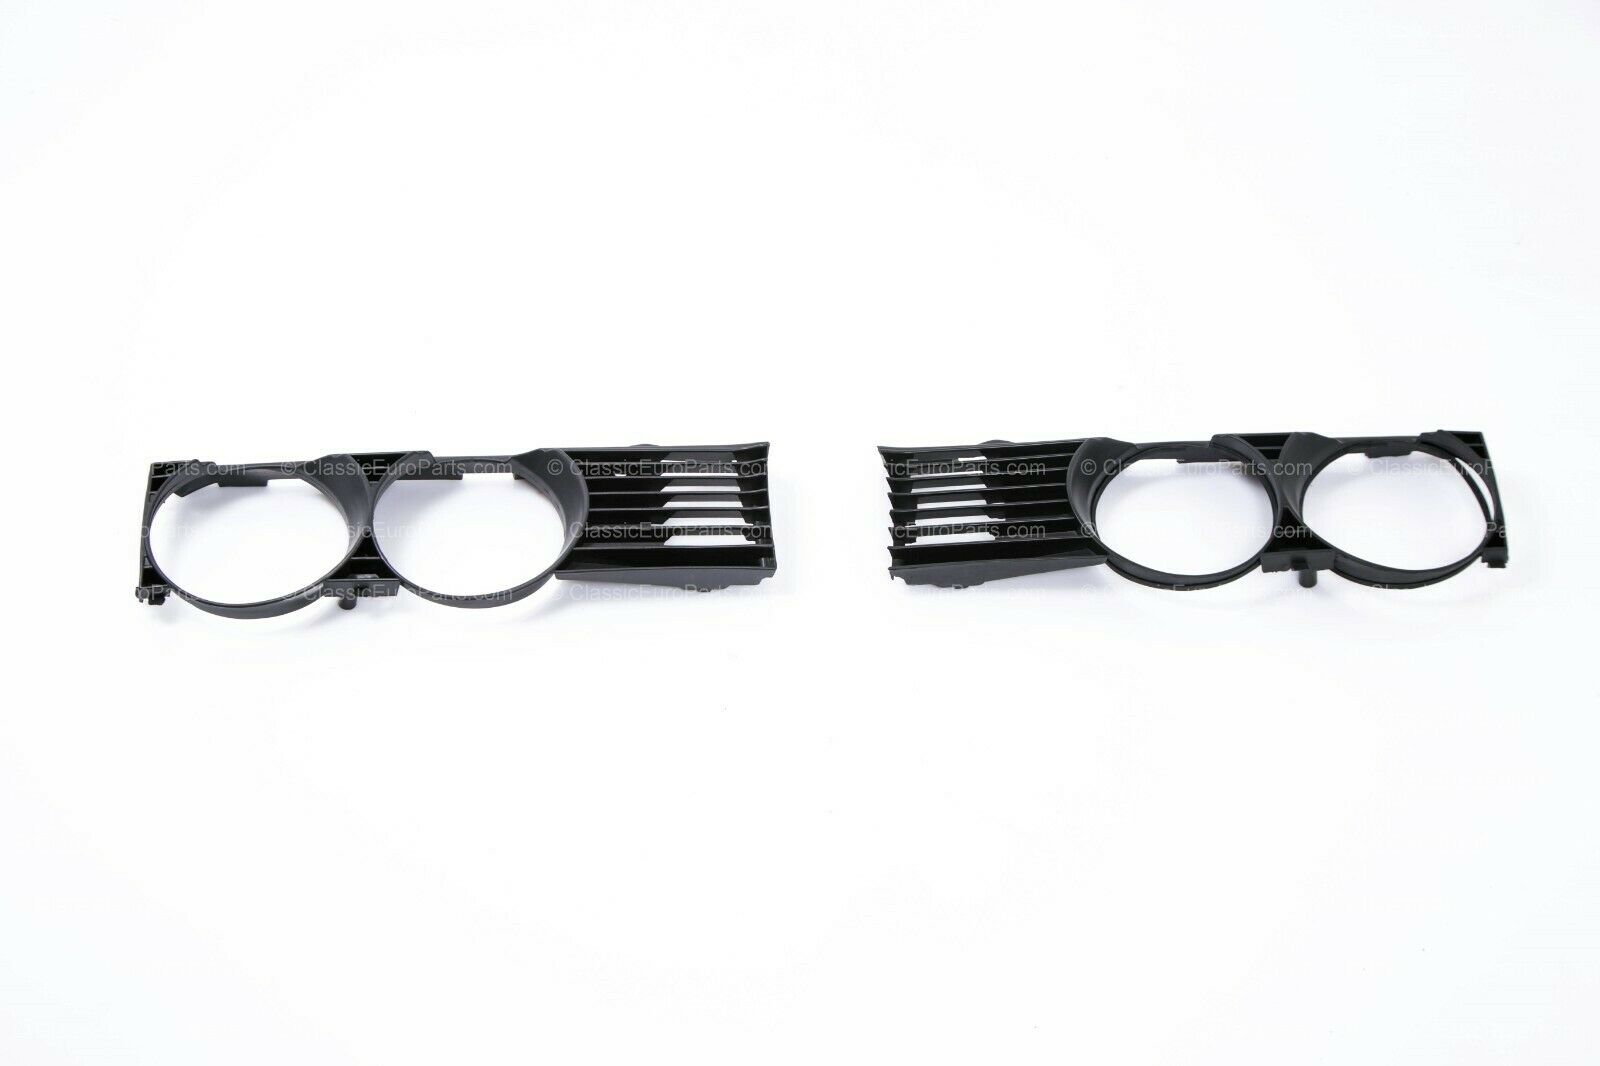 Euro Headlight Grill Set For E32 With 6 Cylinder Engine